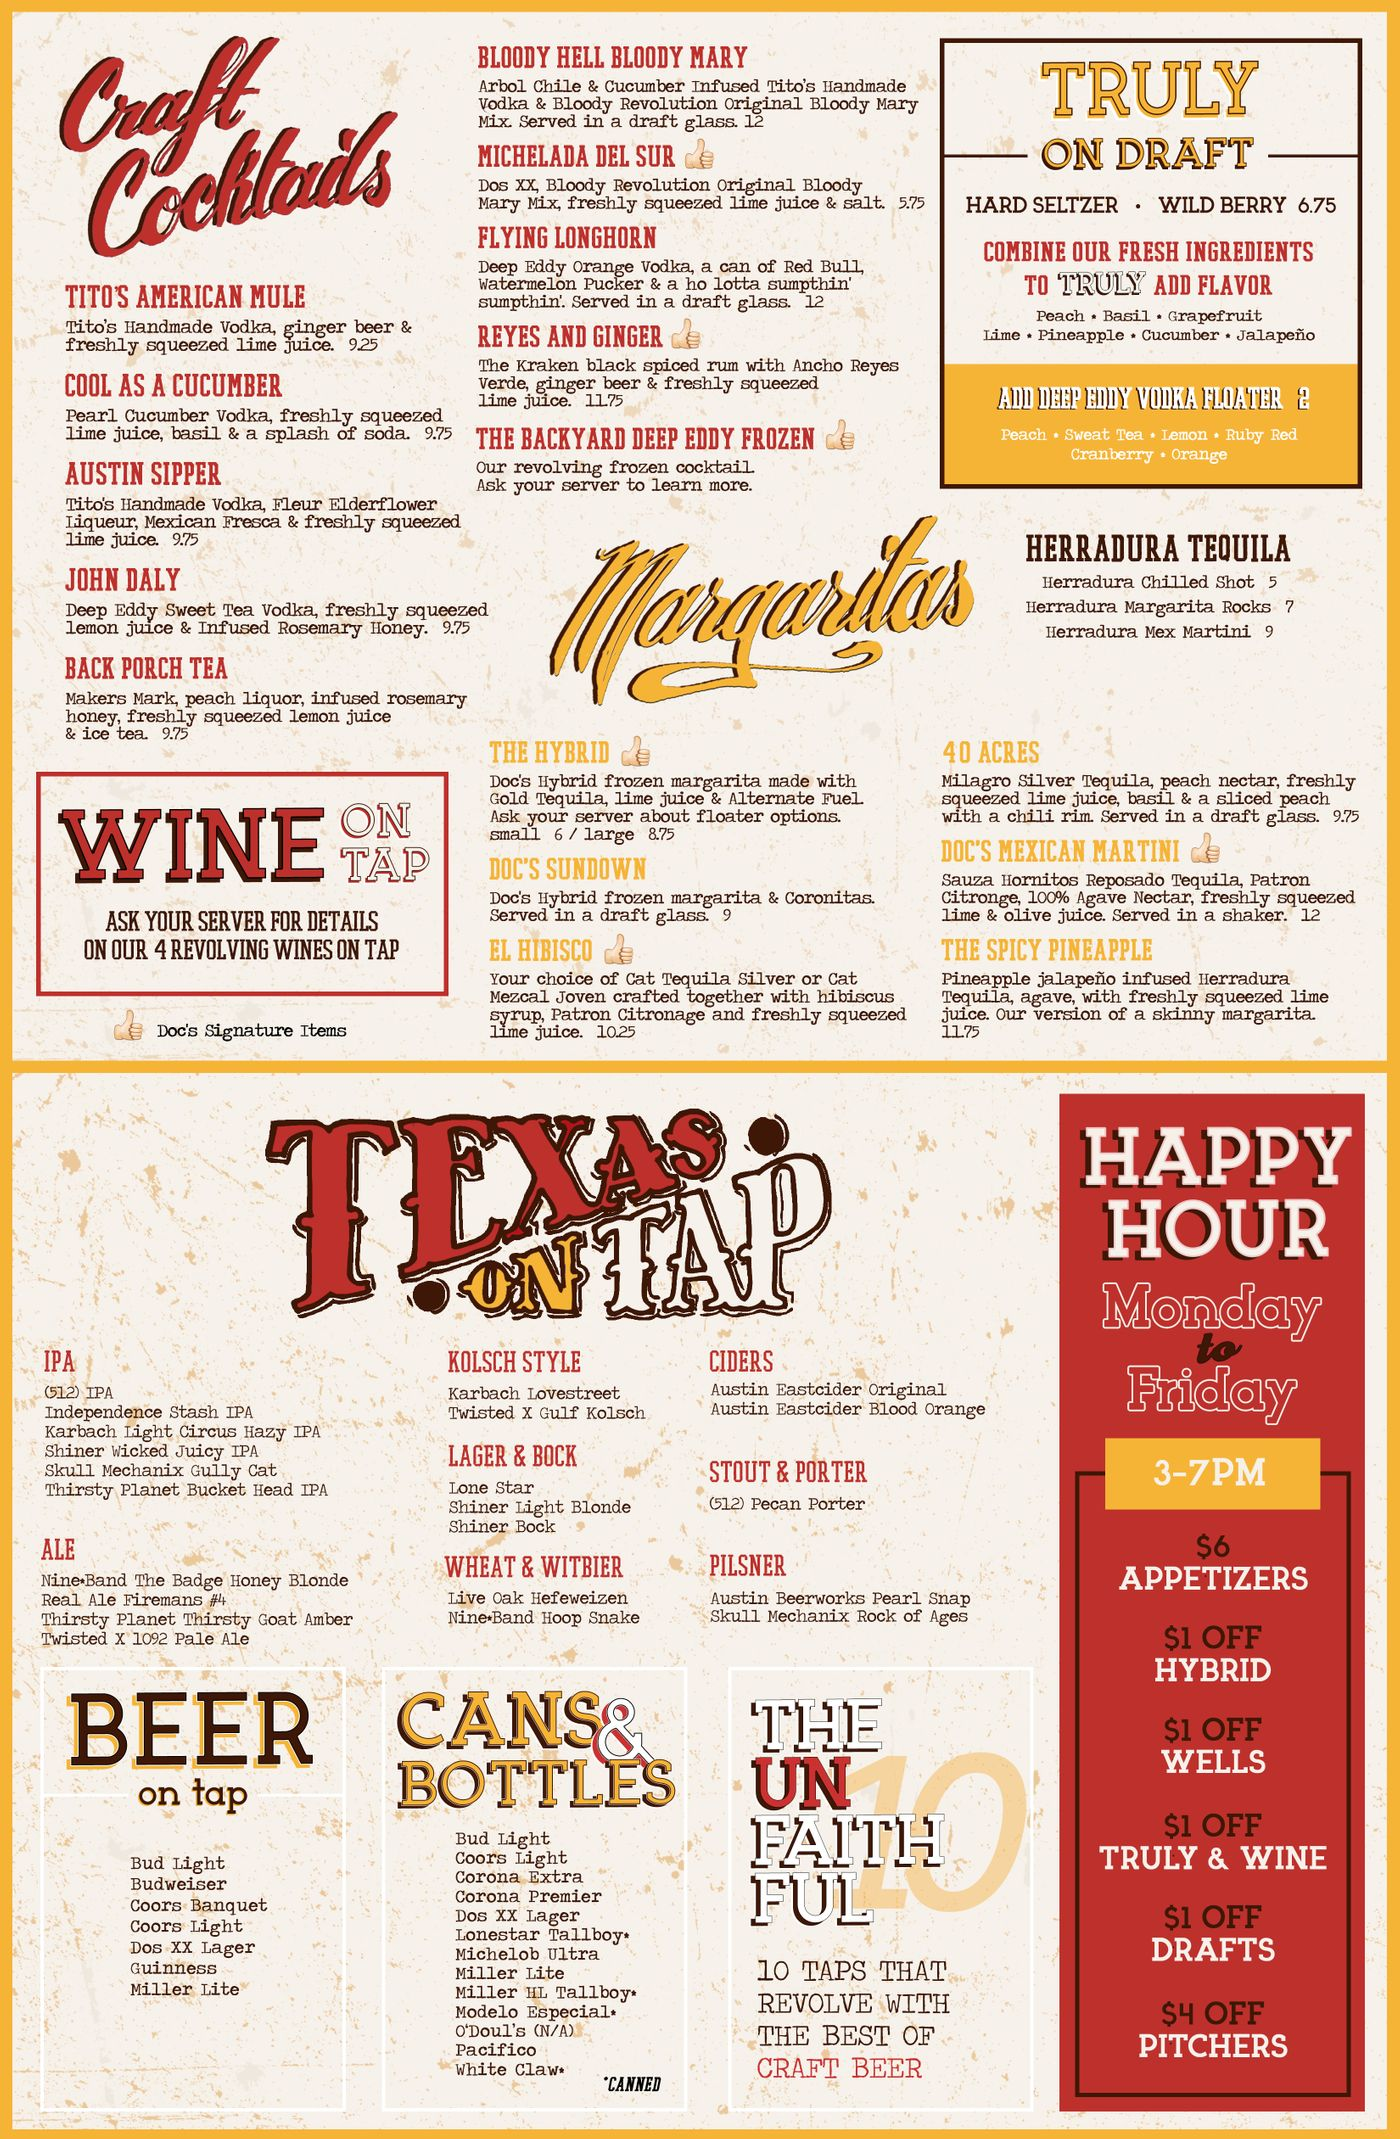 drinkmenu-1 copy.jpg